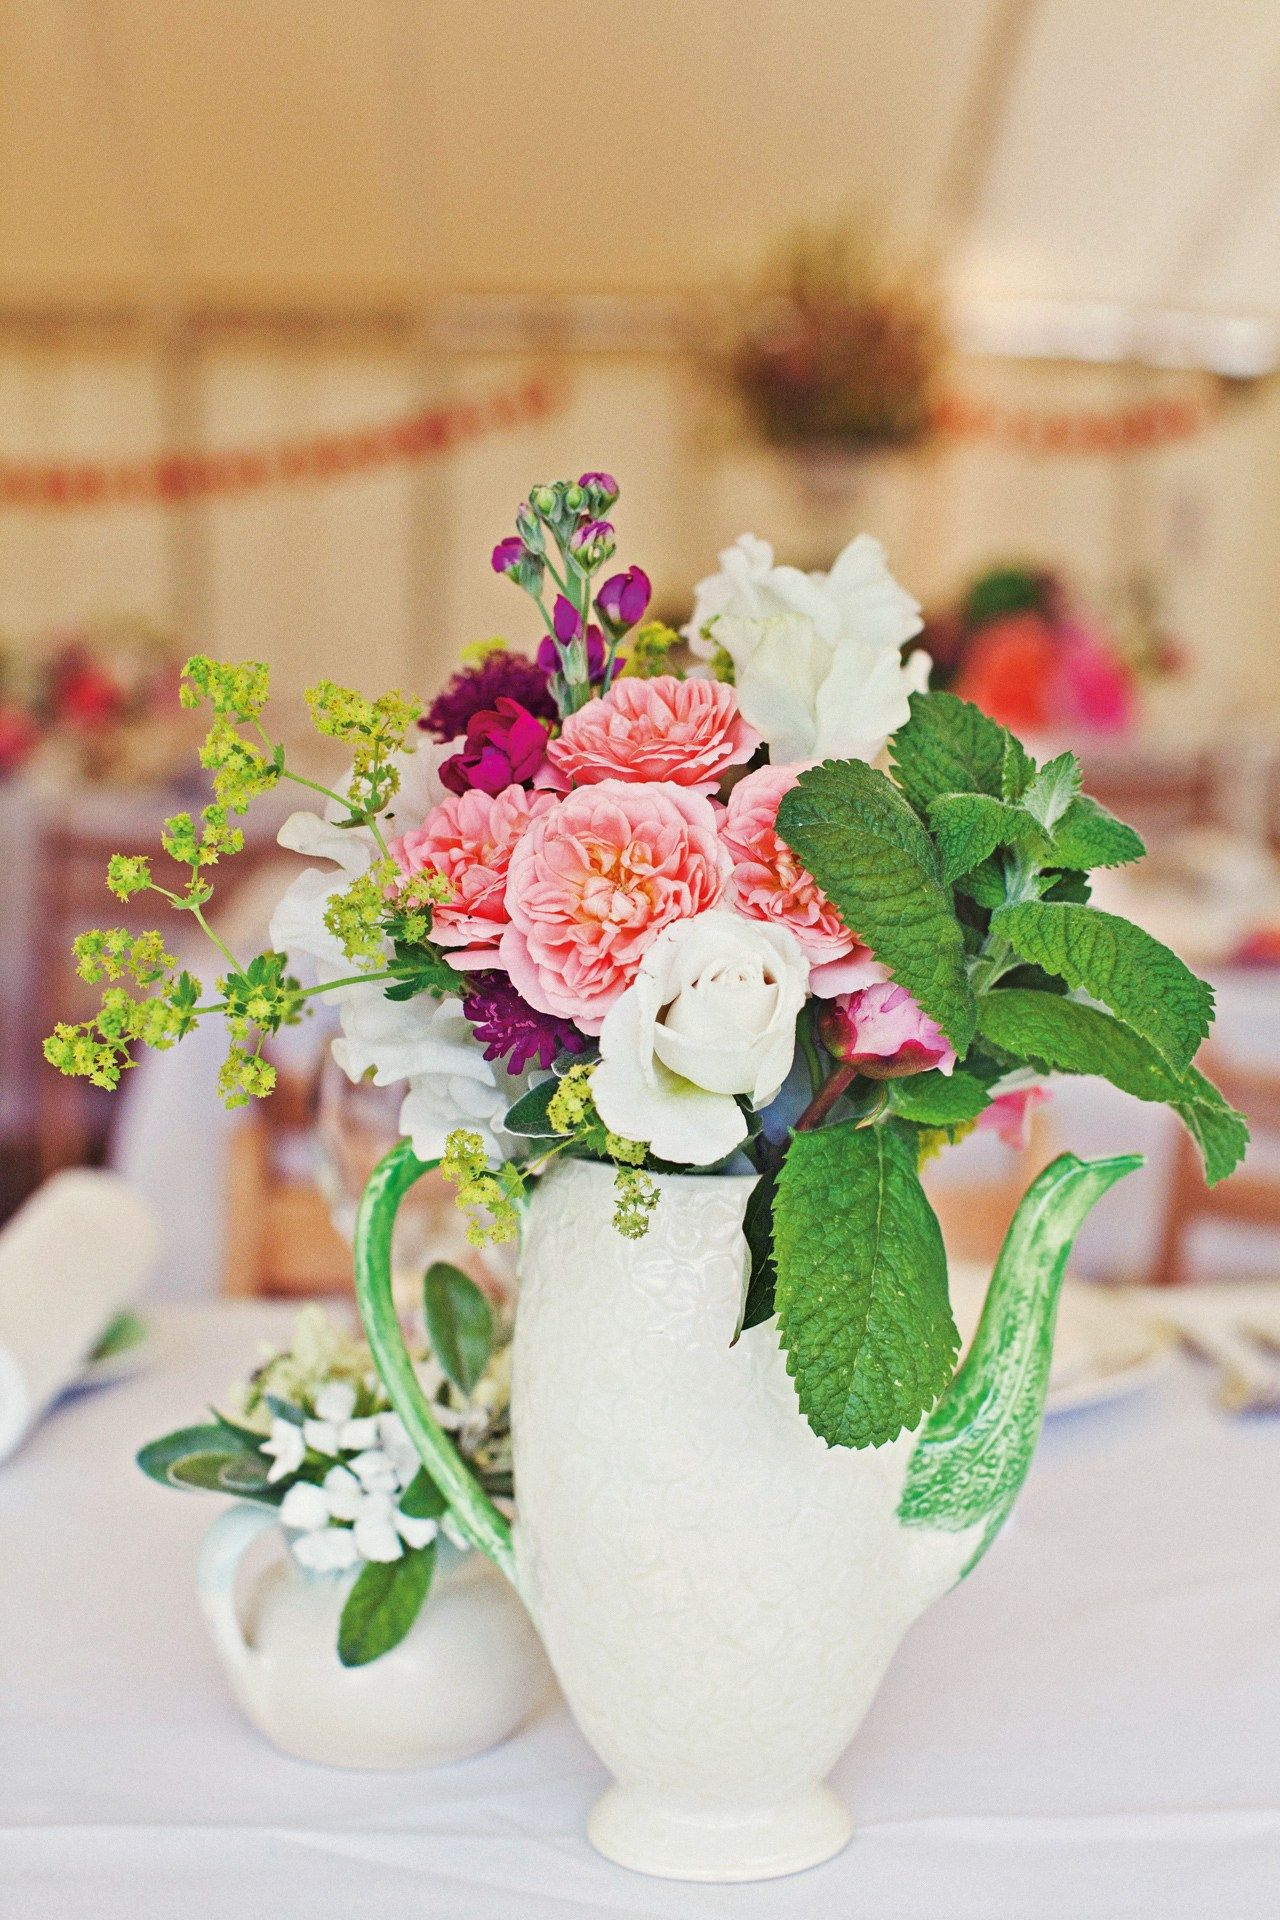 Mixed roses, mint, alchemilla mollis, gladioli and scabious arranged in a vintage china teapot.